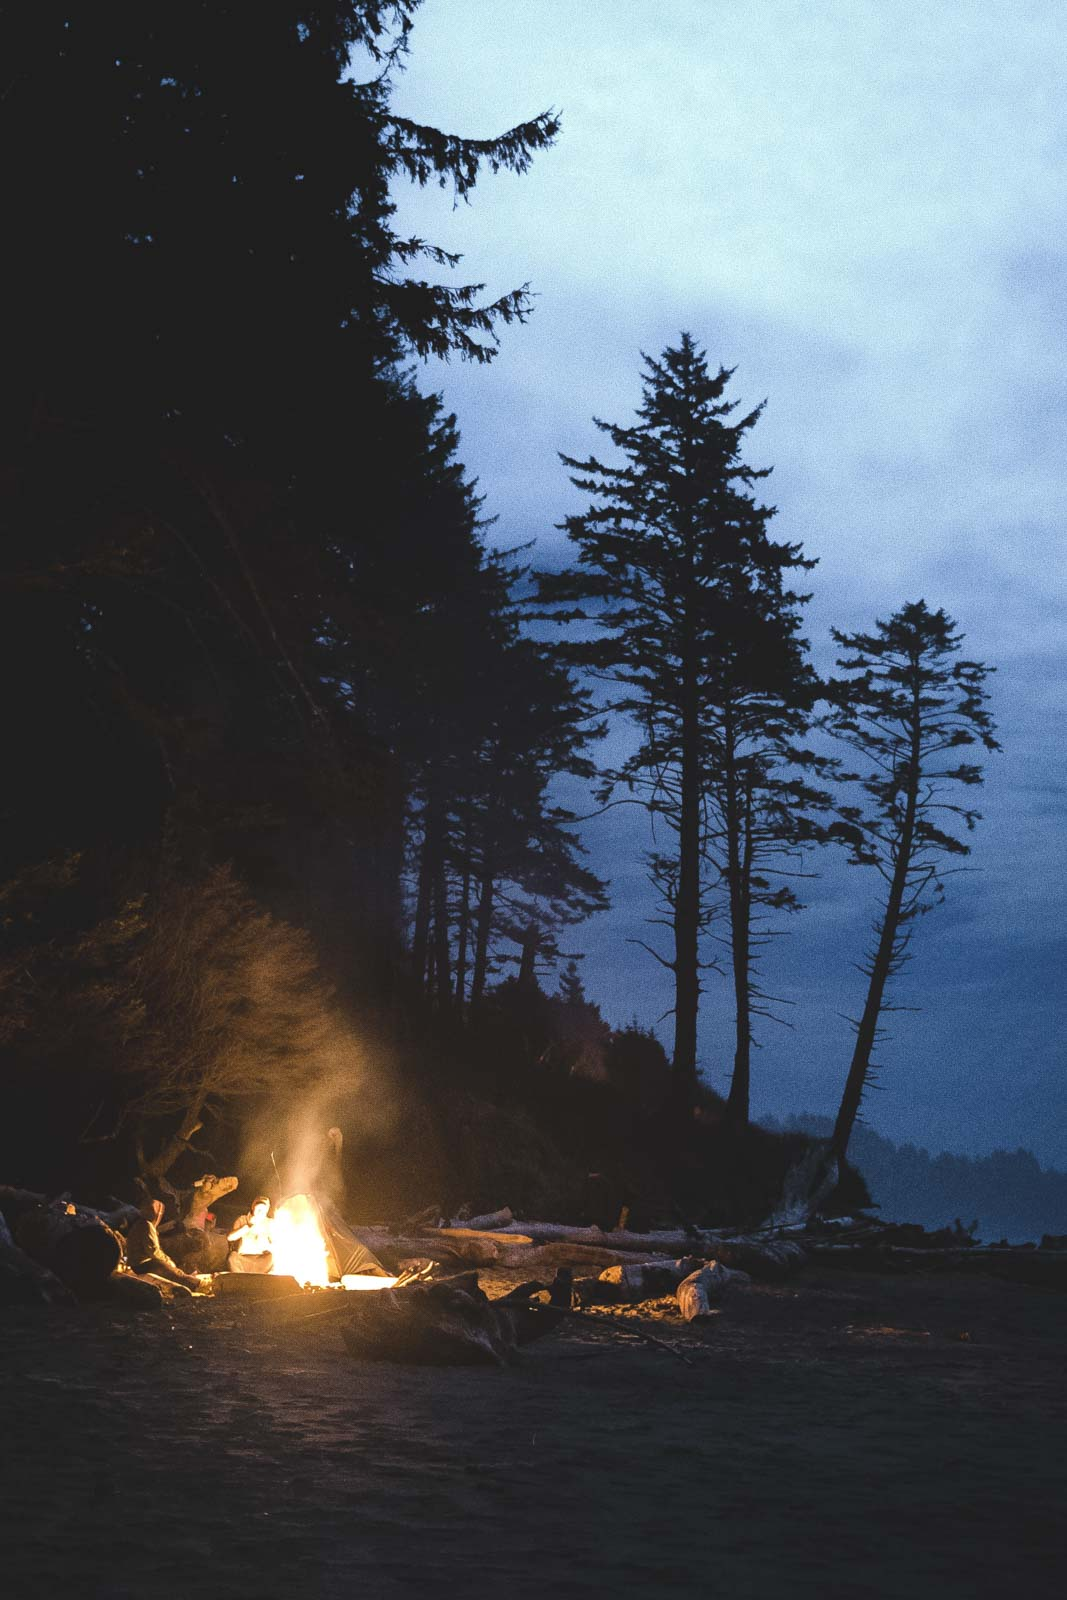 Beach bonfire in dark with trees behind in Lincoln City